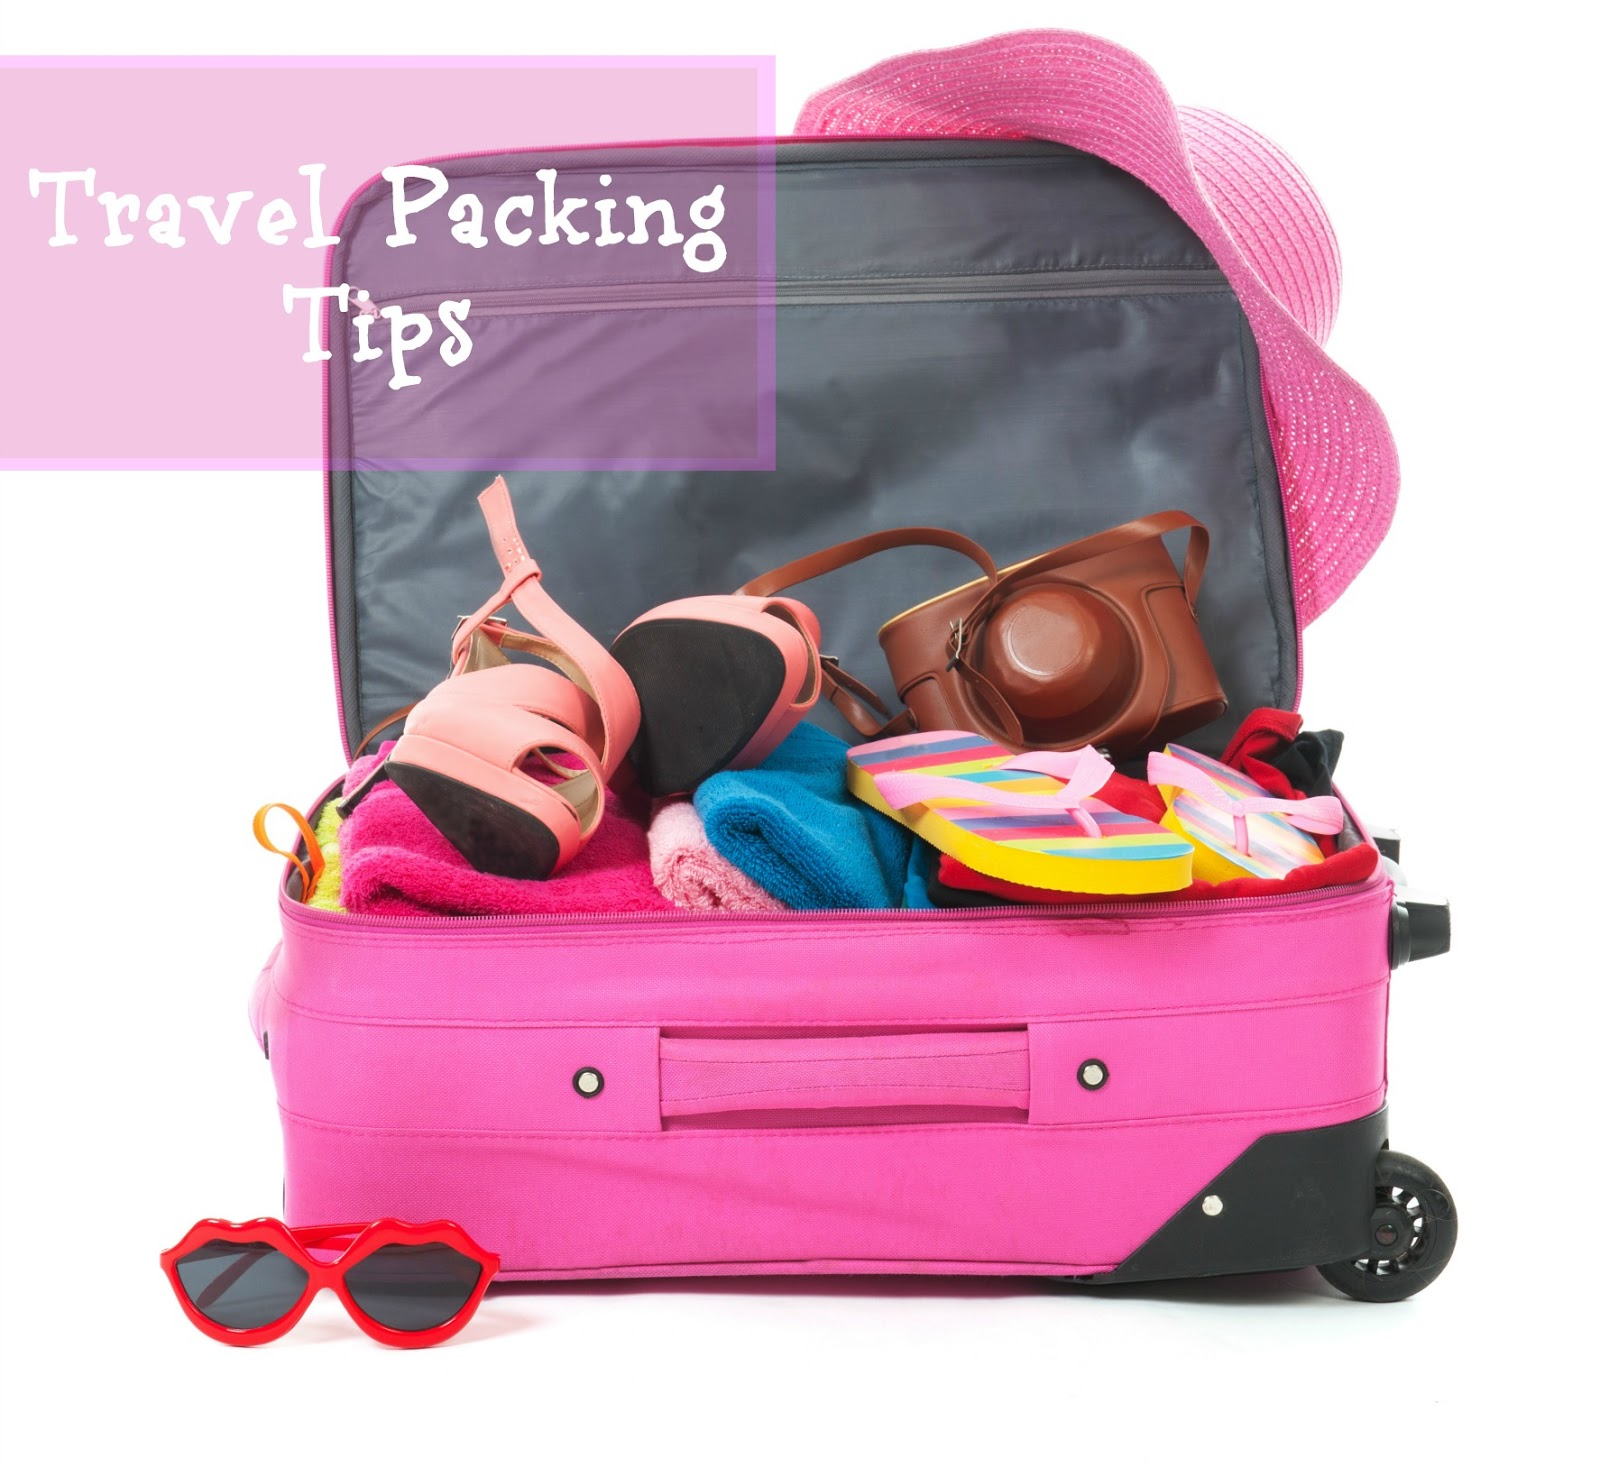 5 Tips to help make packing for #travel easier.